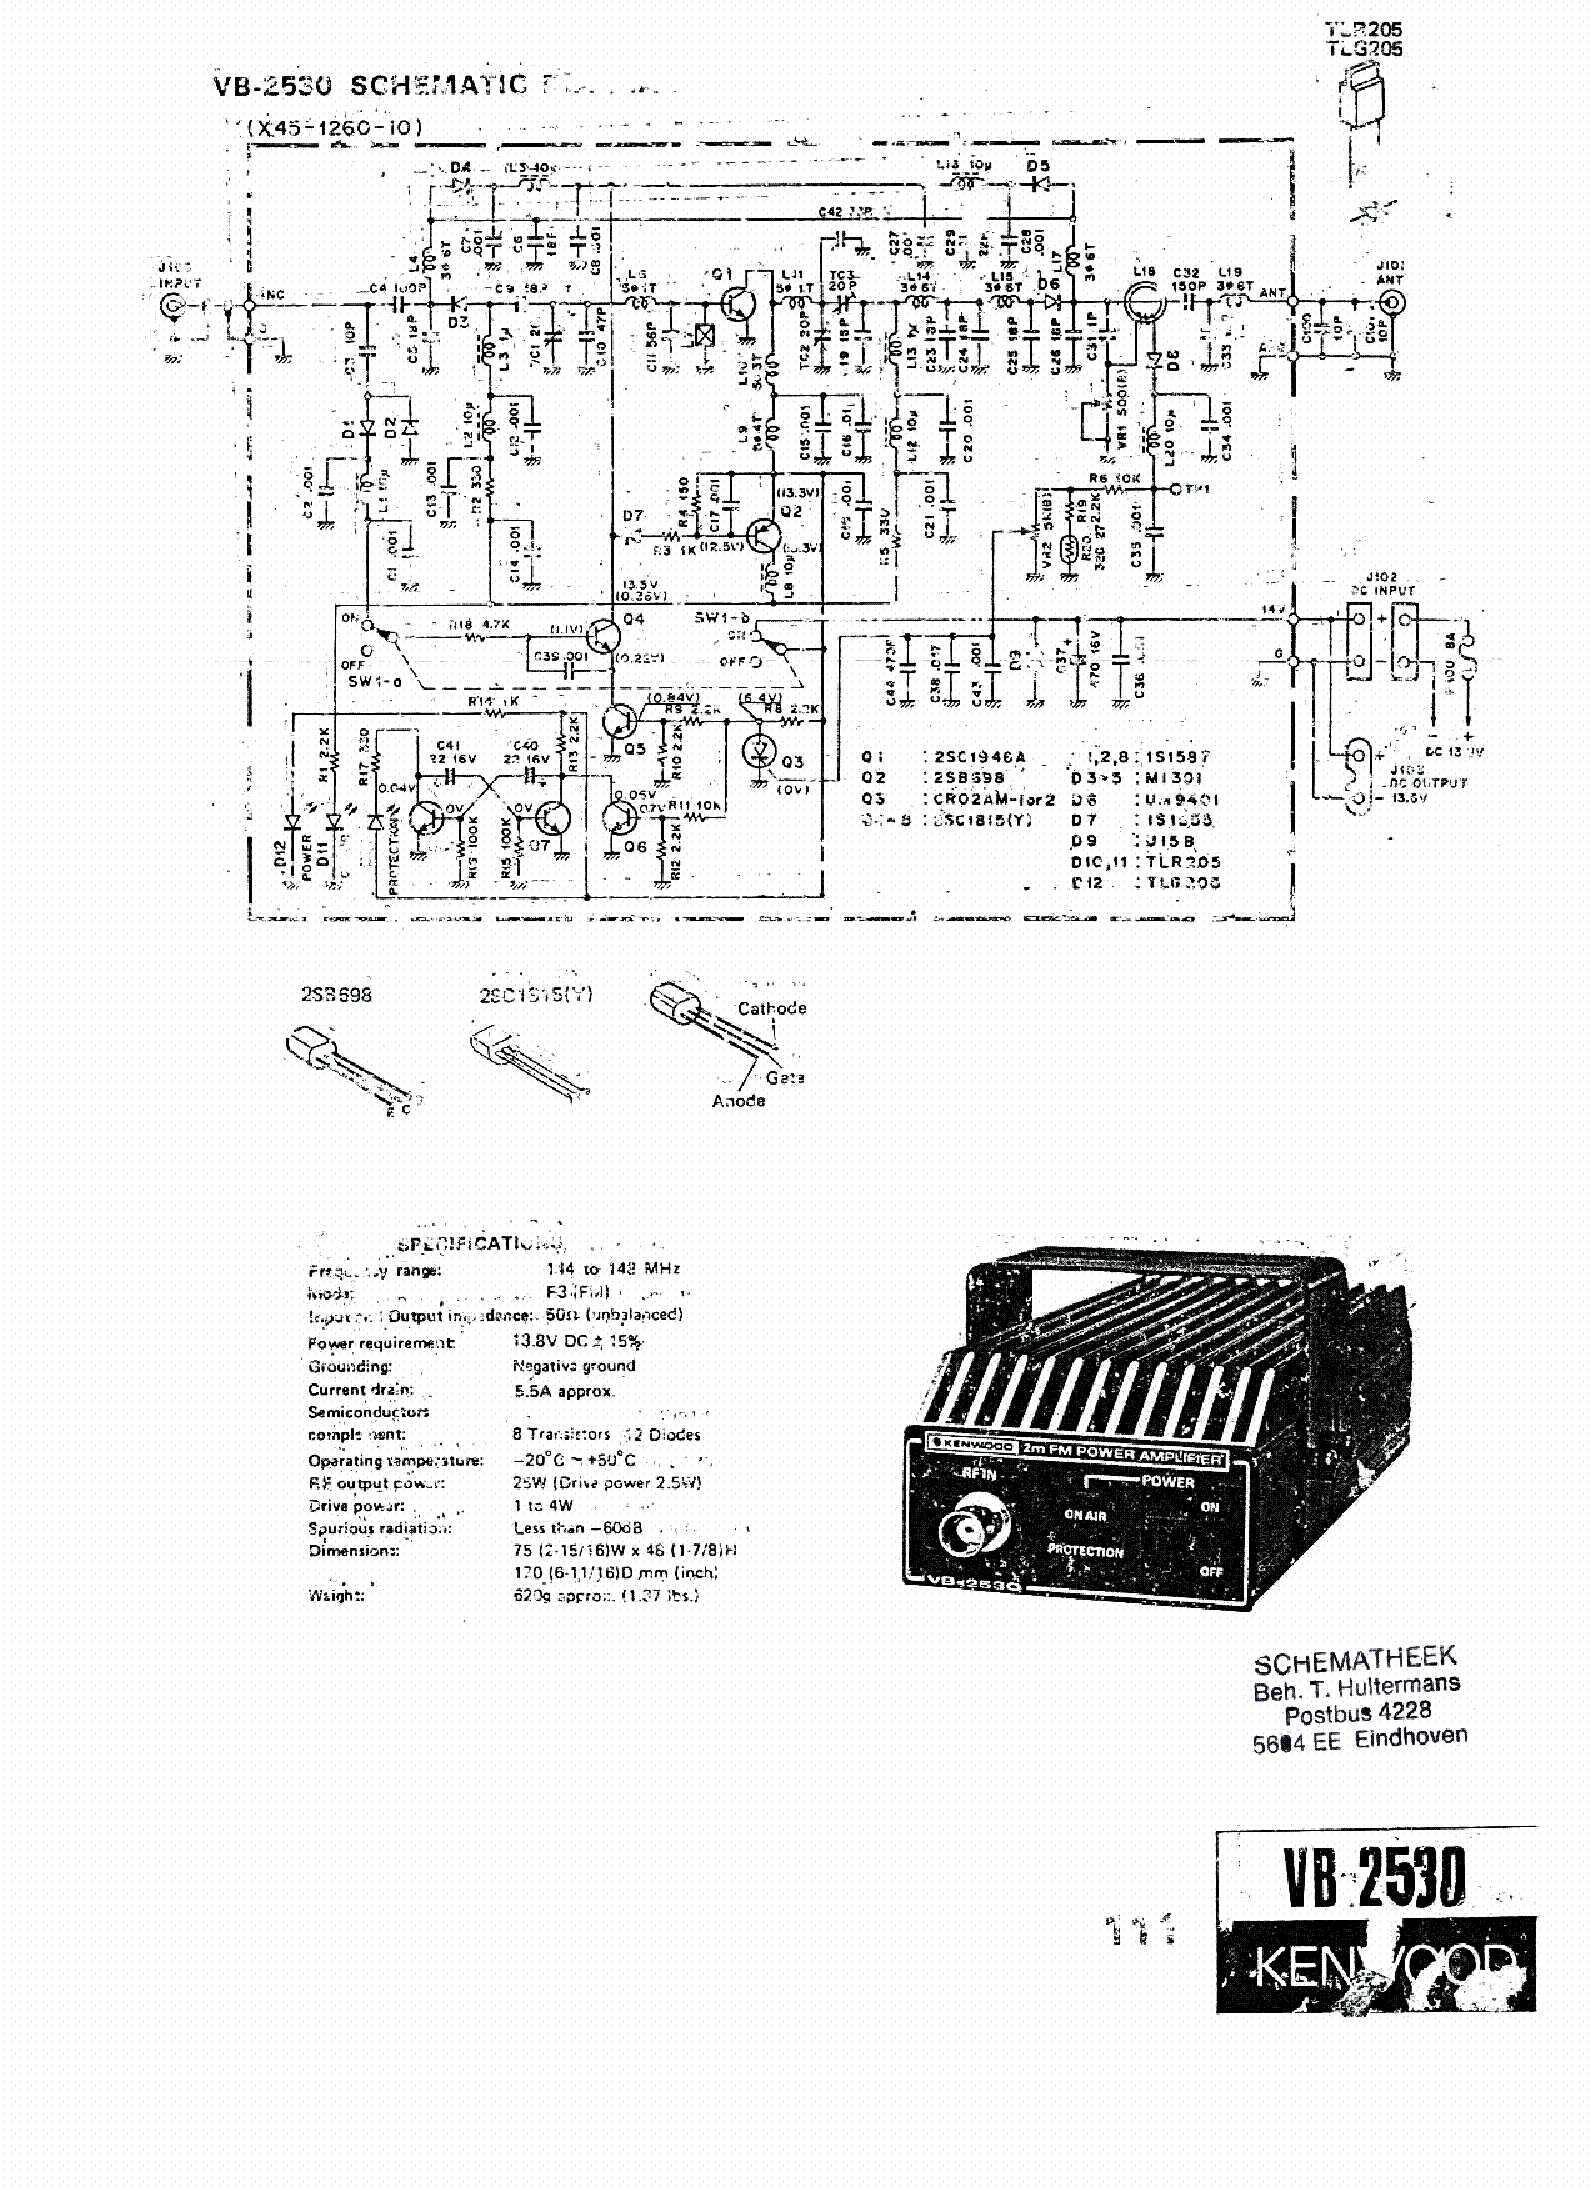 KENWOOD VB-2530 SCH Service Manual download, schematics